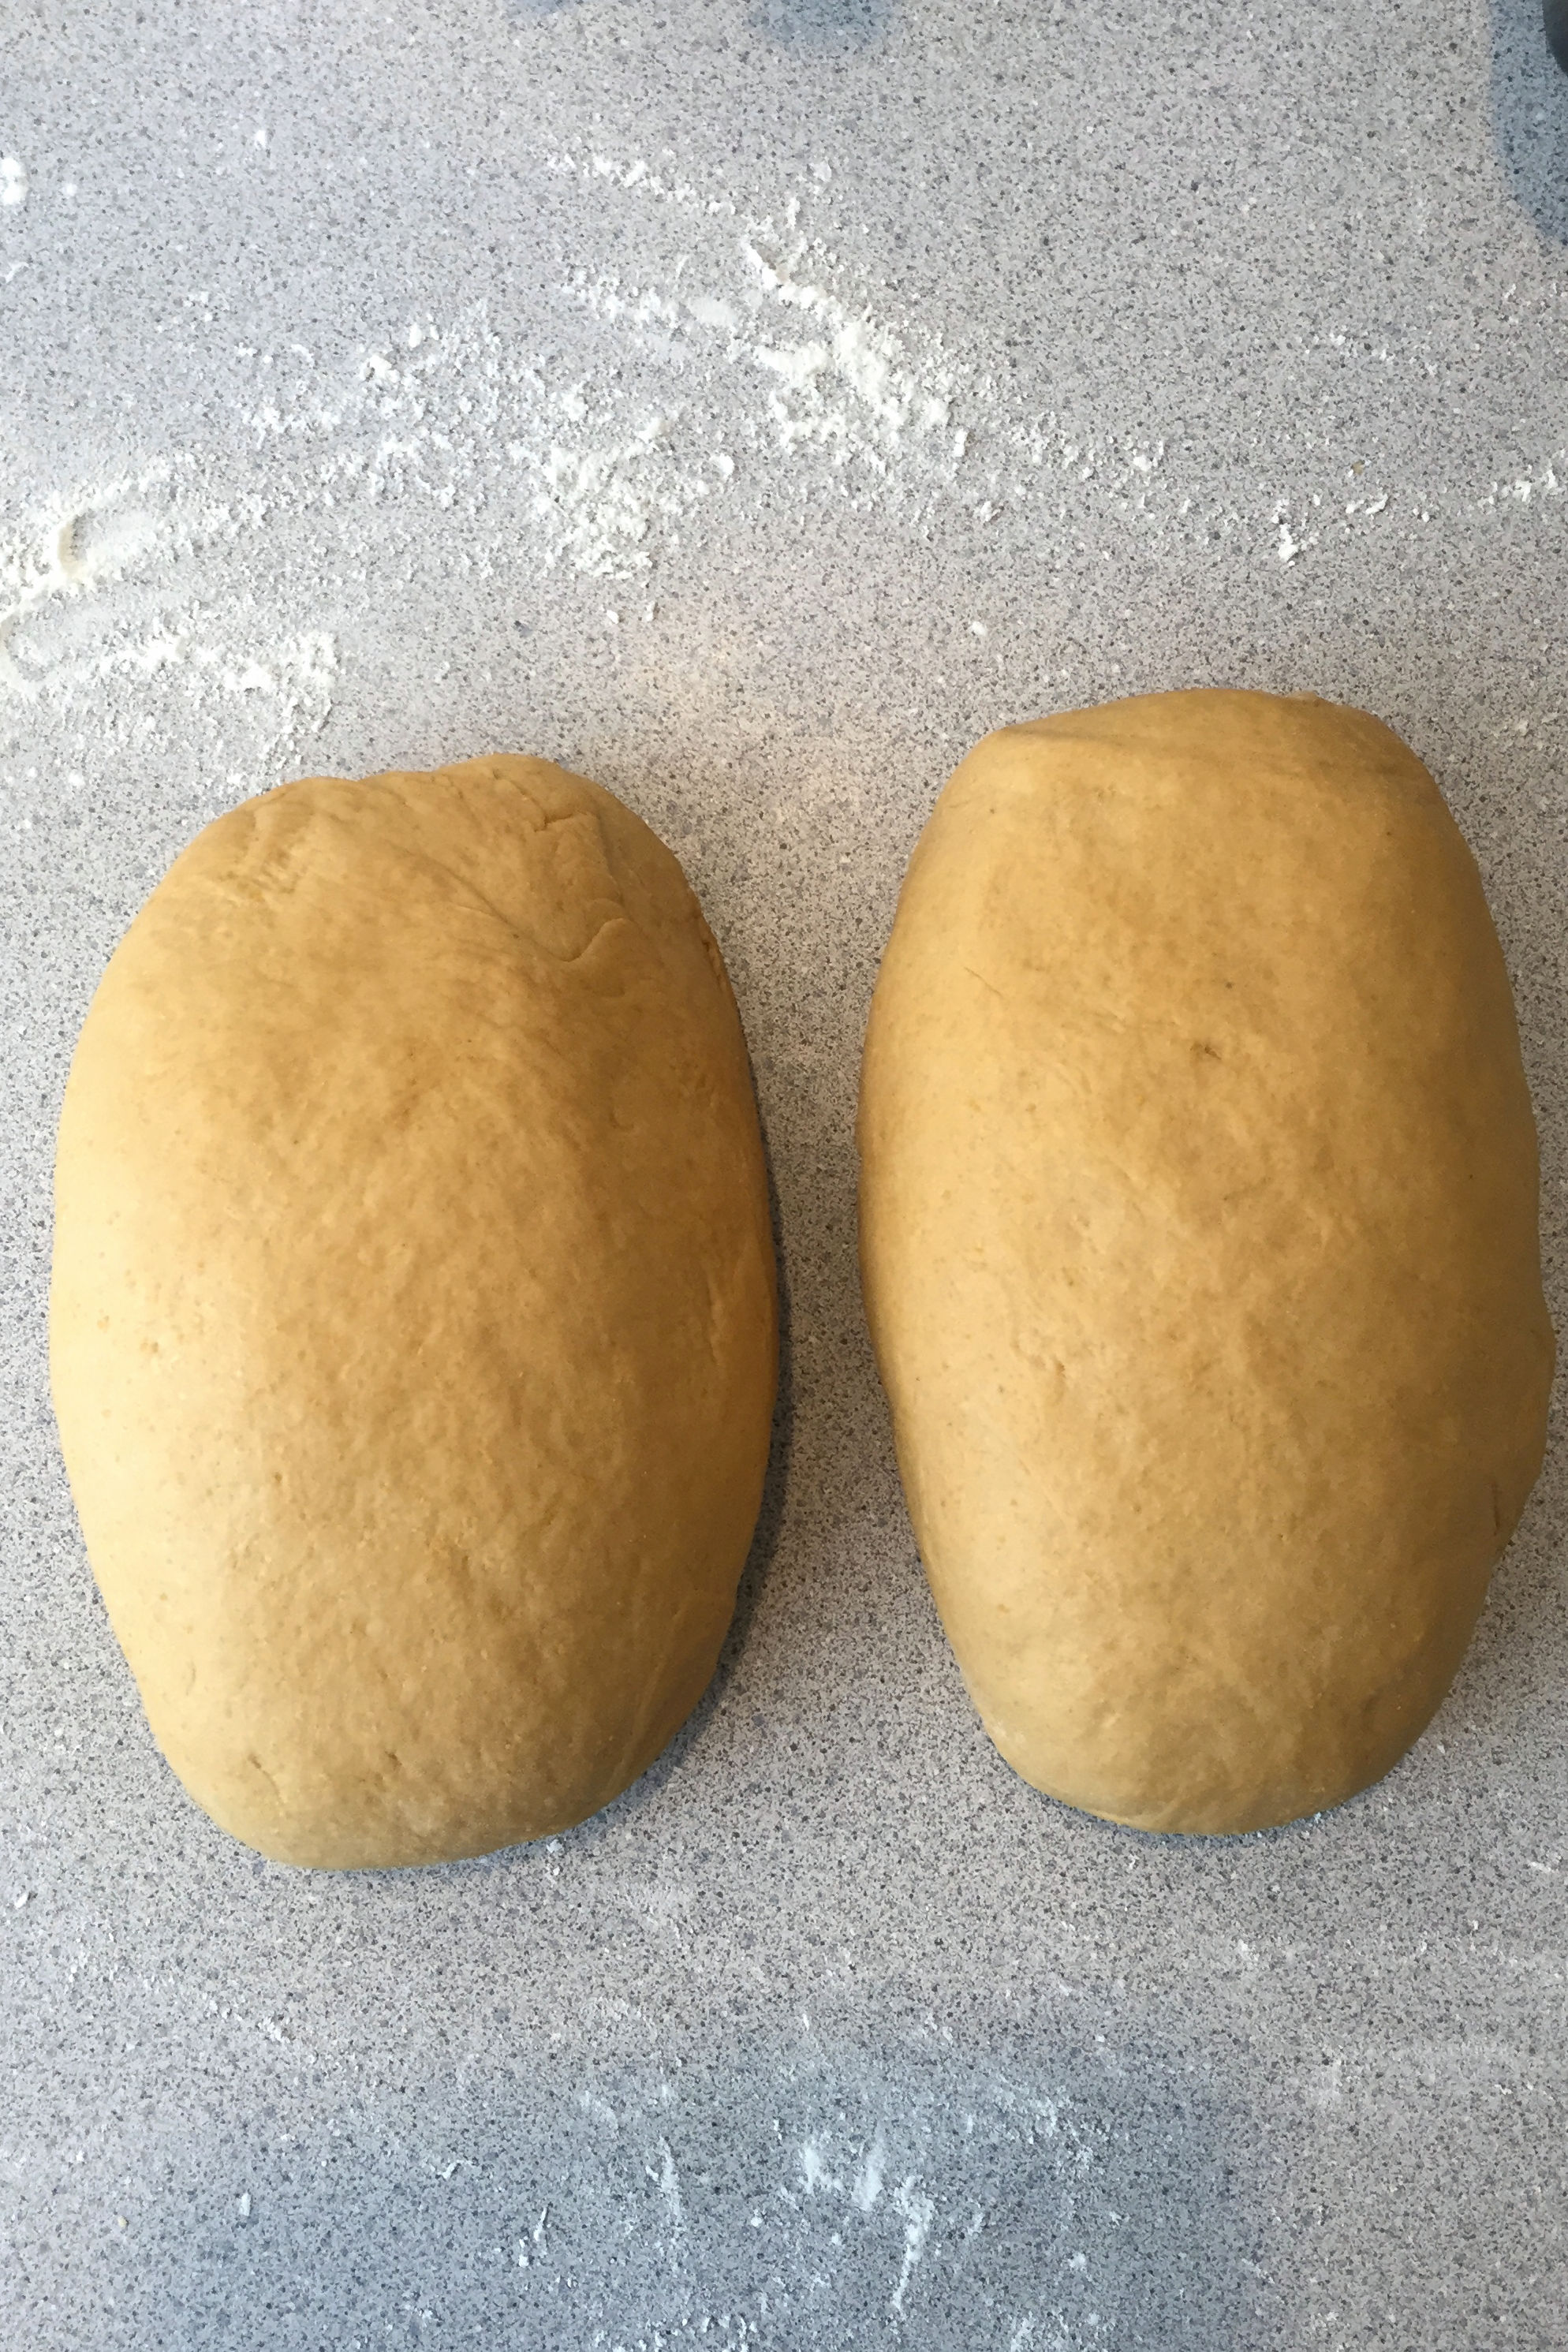 Anadama Bread dough